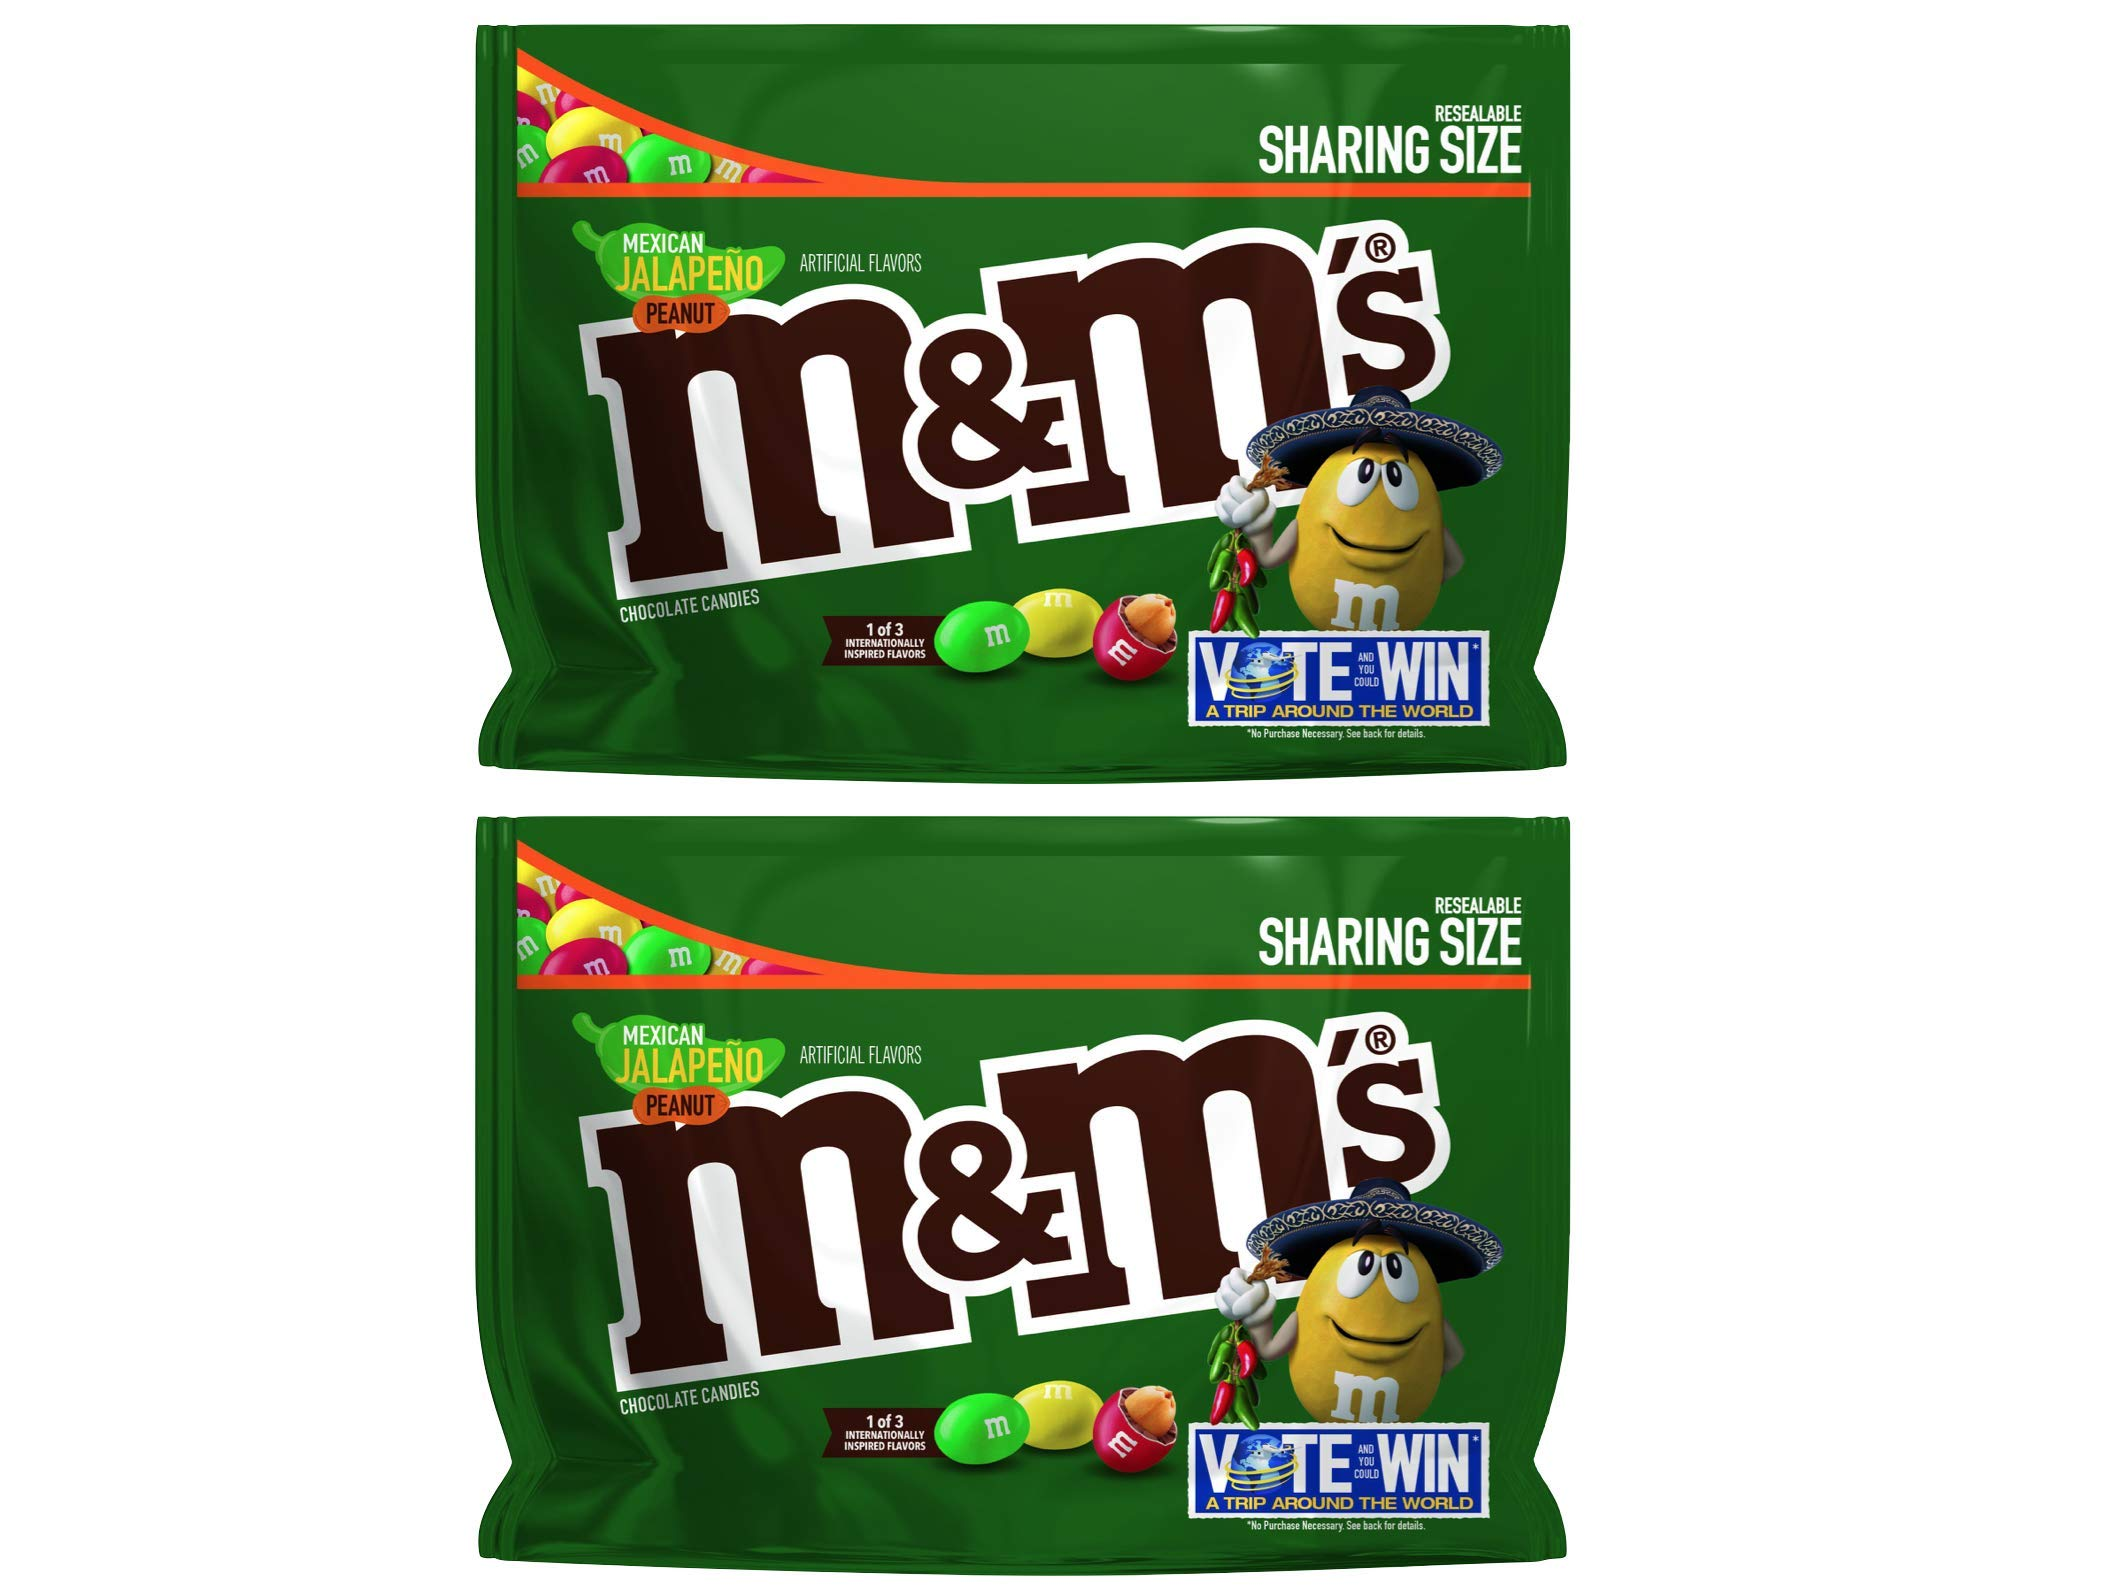 M&M's (Pack of 2) Chocolate Candy Flavor Vote Mexican Jalapeno Peanut Sharing Size, 9.6 Ounce Bag by M&M'S